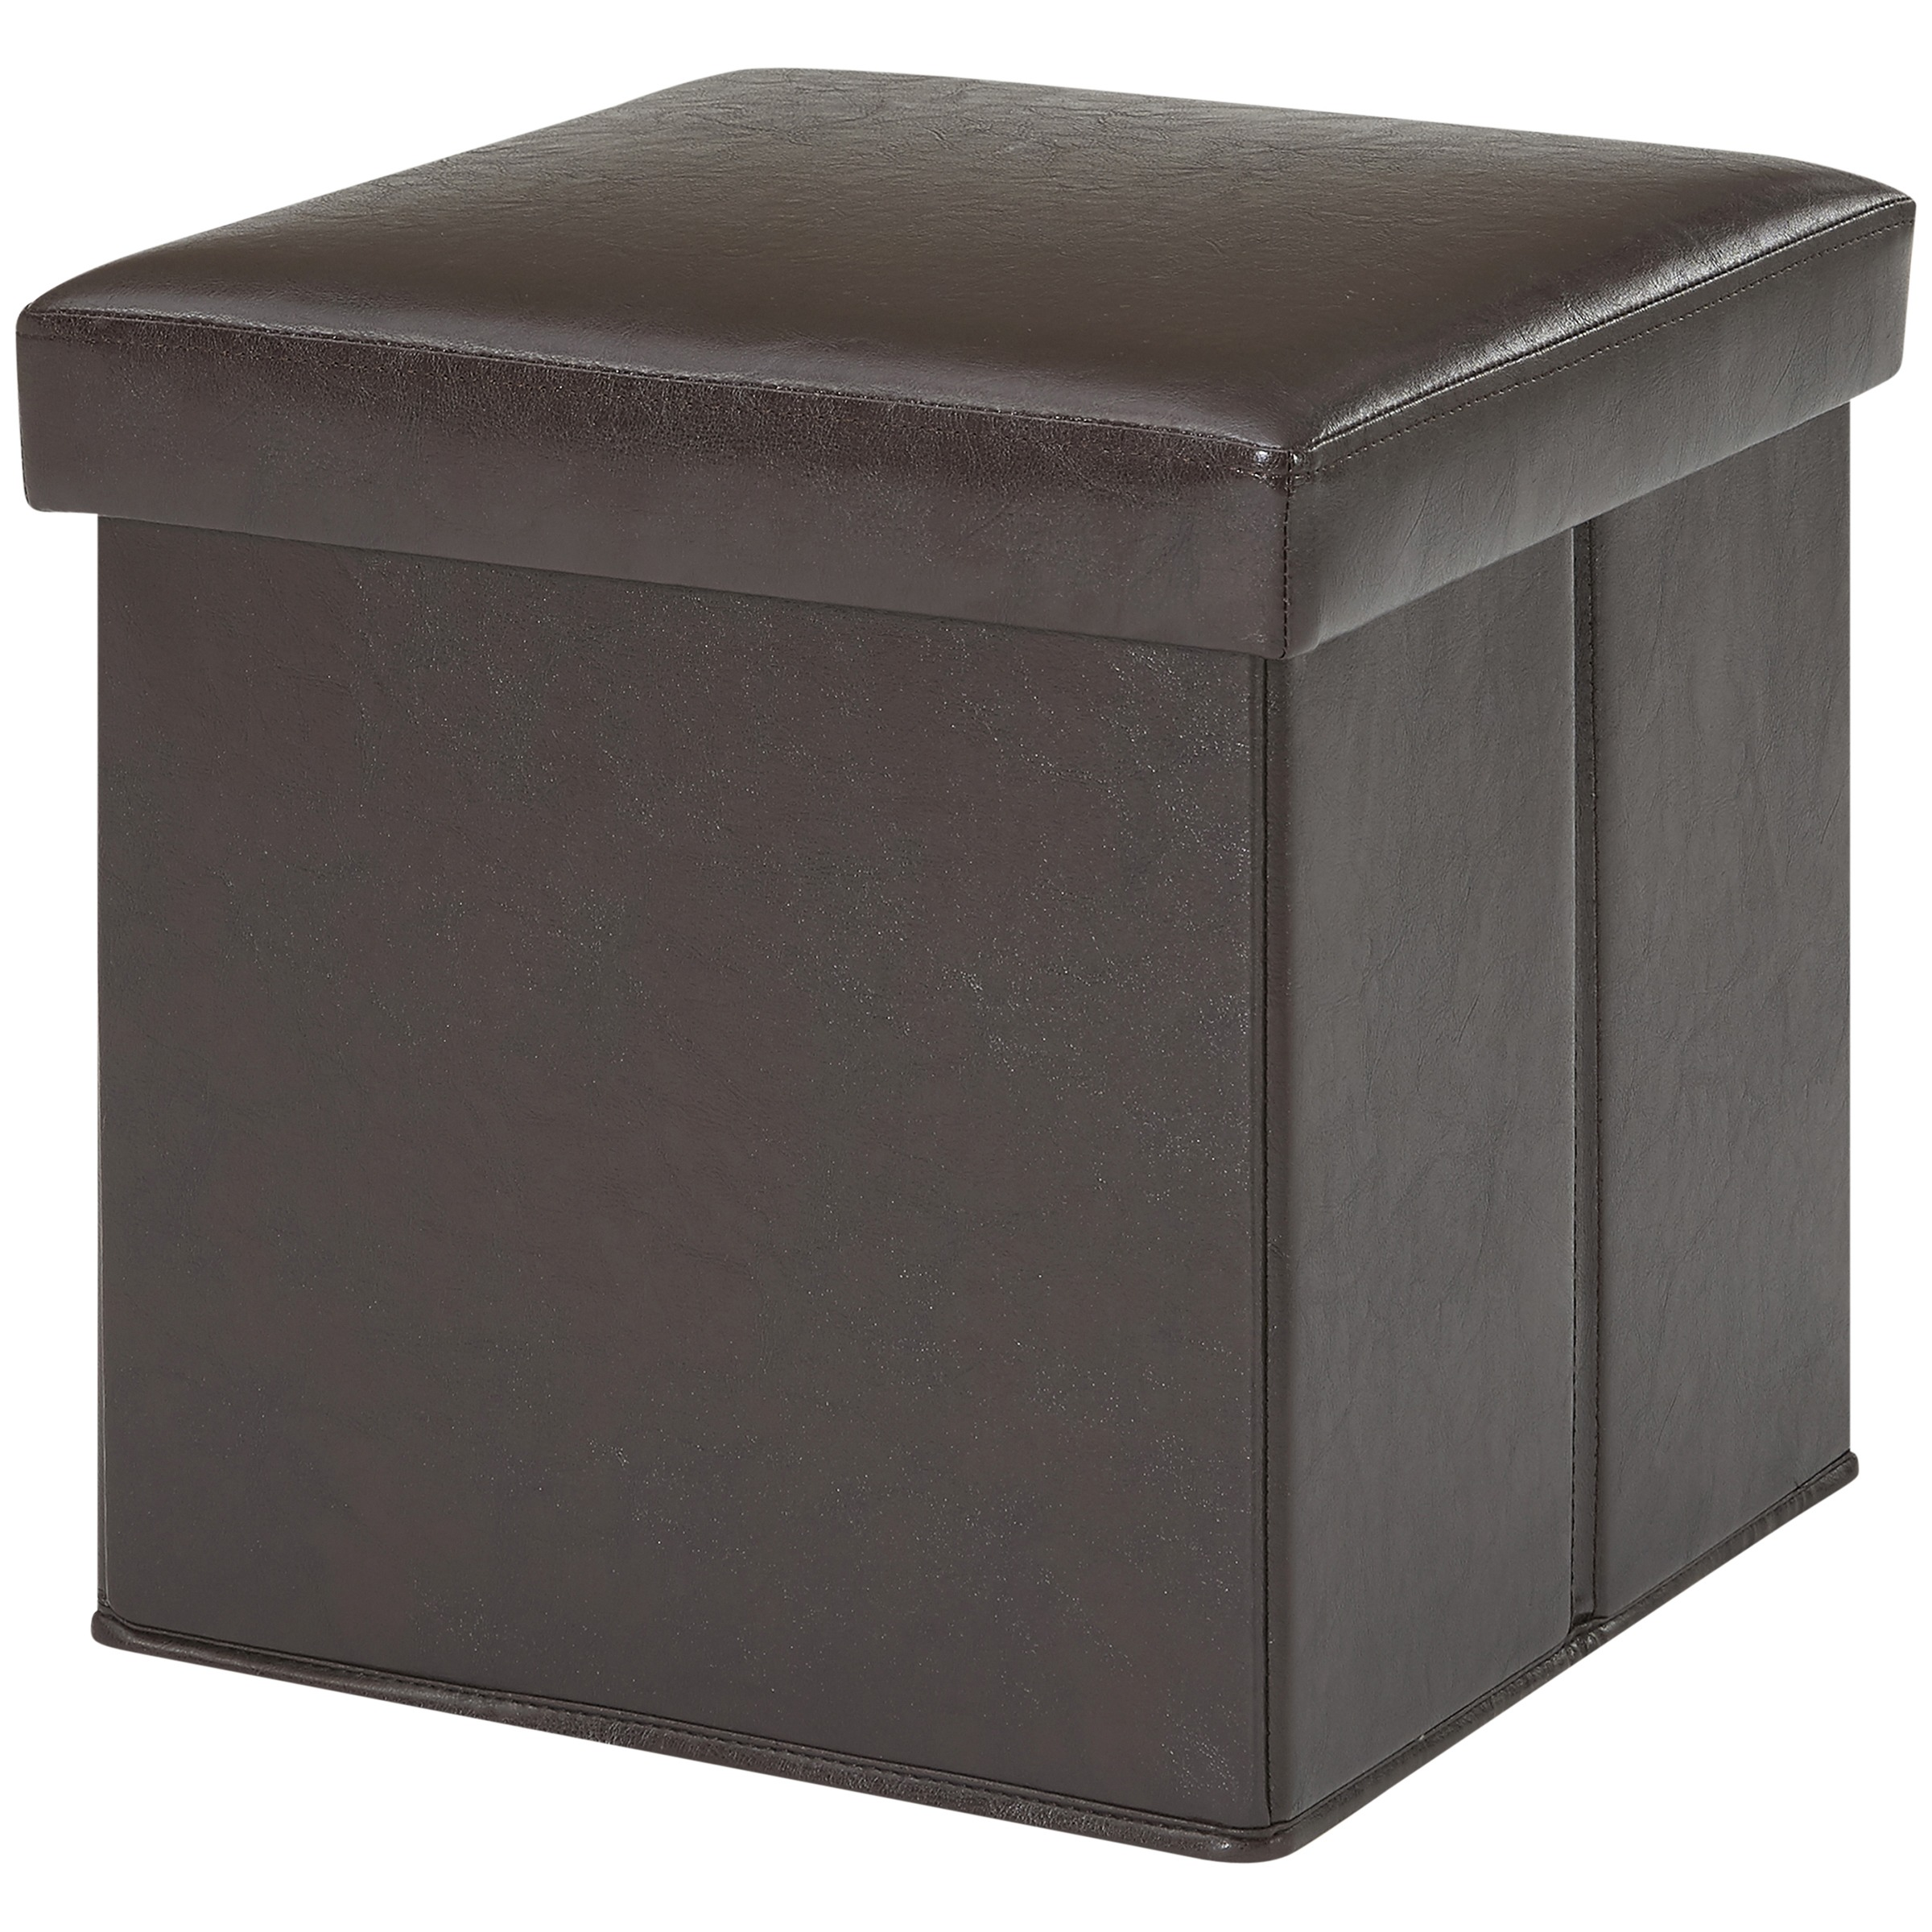 Genial Product Image Mainstays Ultra Collapsible Storage Ottoman, Brown Faux  Leather